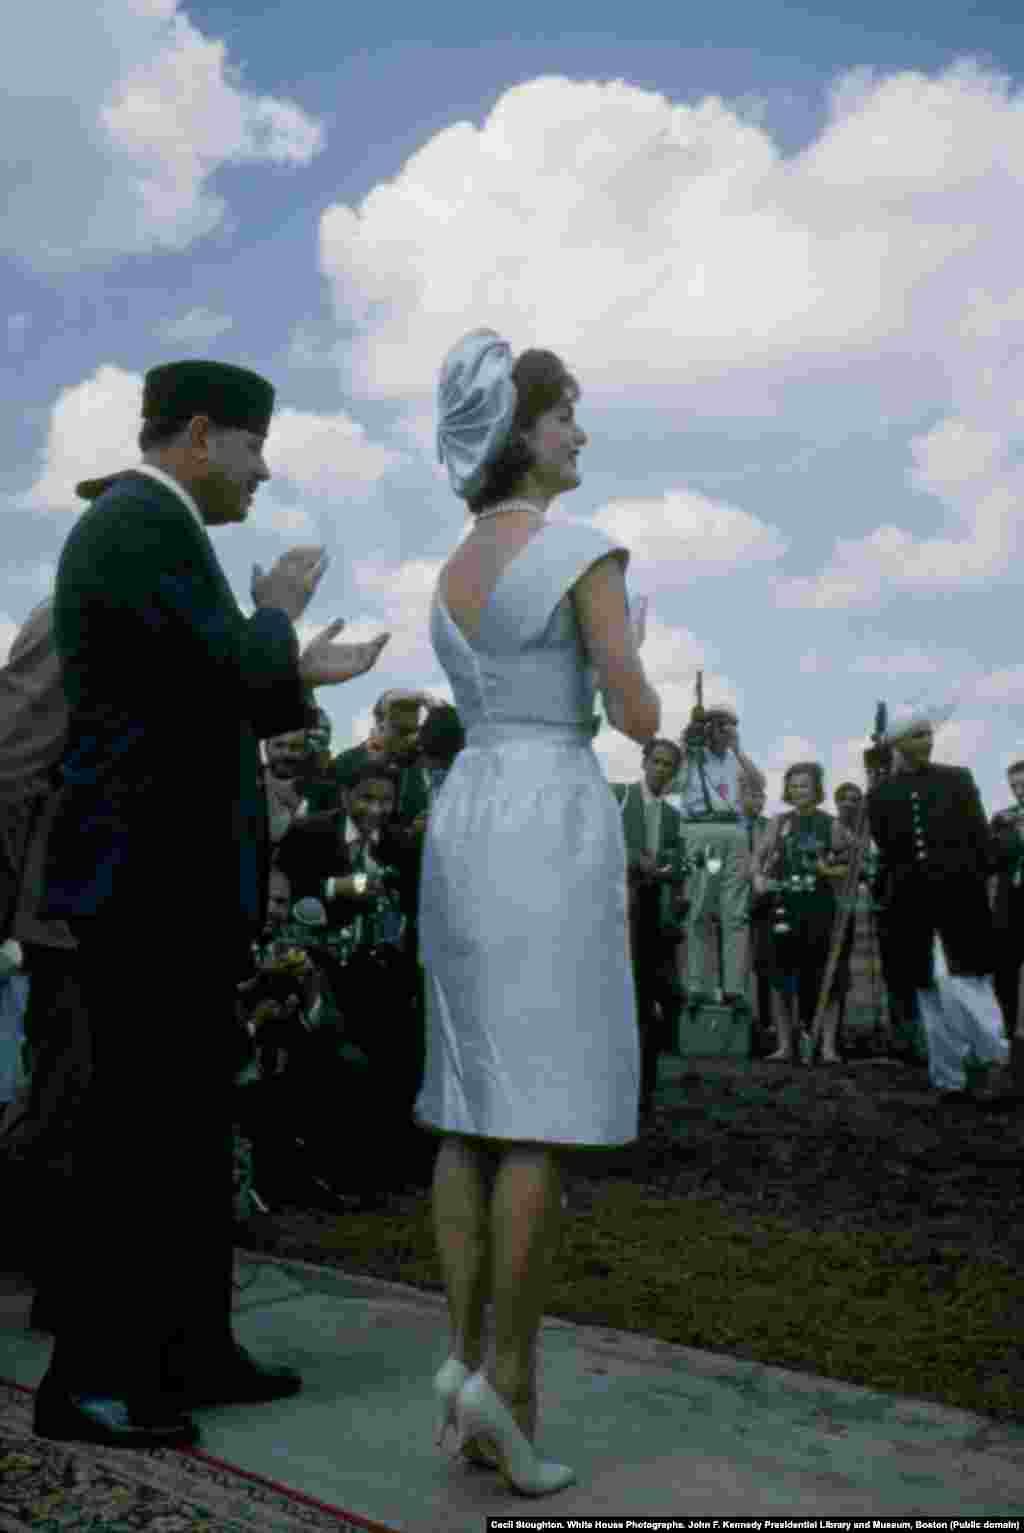 Jacqueline Kennedy and President Mohammad Ayub Khan watch the parade. The first lady later complimented Khan on his traditional fur hat, and the president gifted it to her.